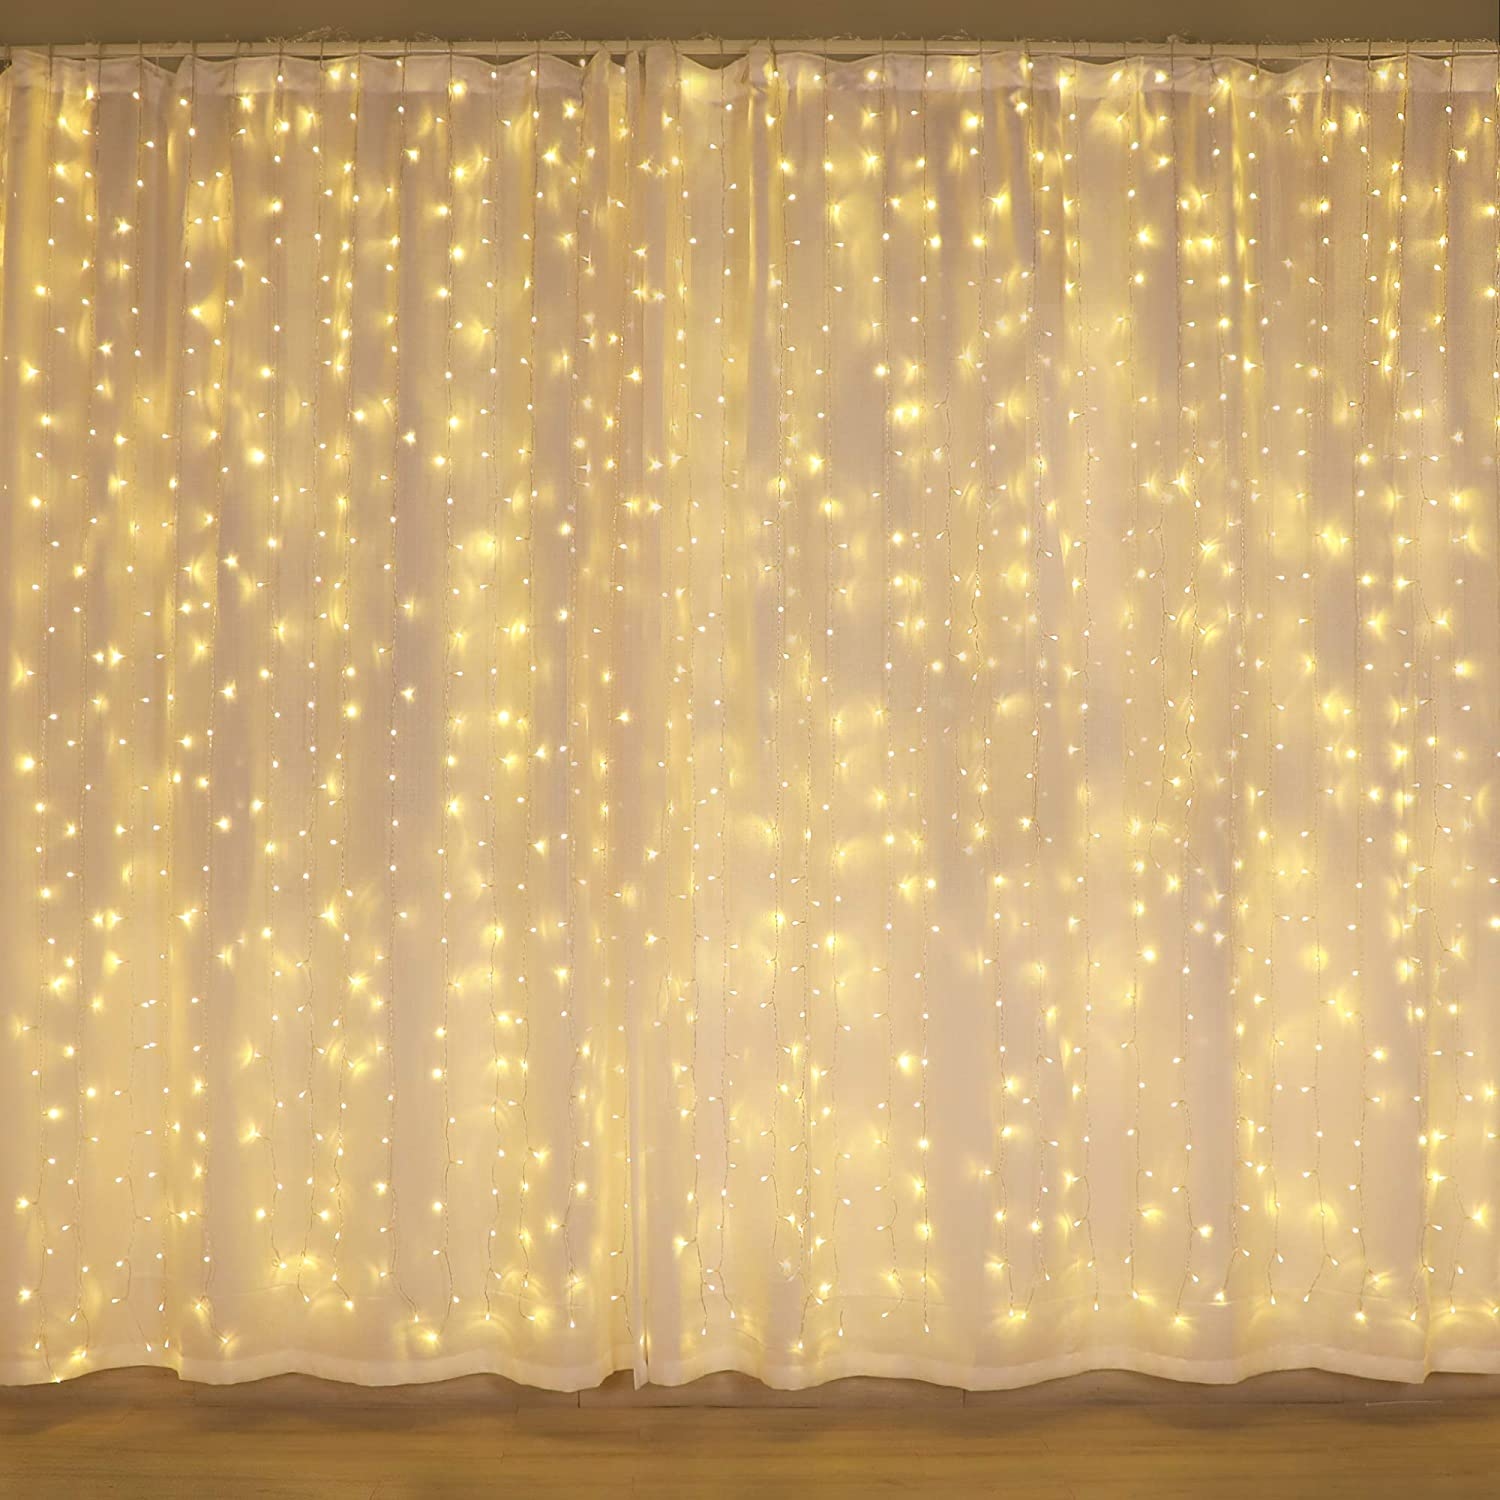 Amazon Com 300 Led Curtain Lights Twinkle Lights For Bedroom Wedding Decorations Wall Decor Lights For Teen Room Essentials For Girls Fairy String Lights Party Birthday Christmas Decorations Warm White Home Kitchen